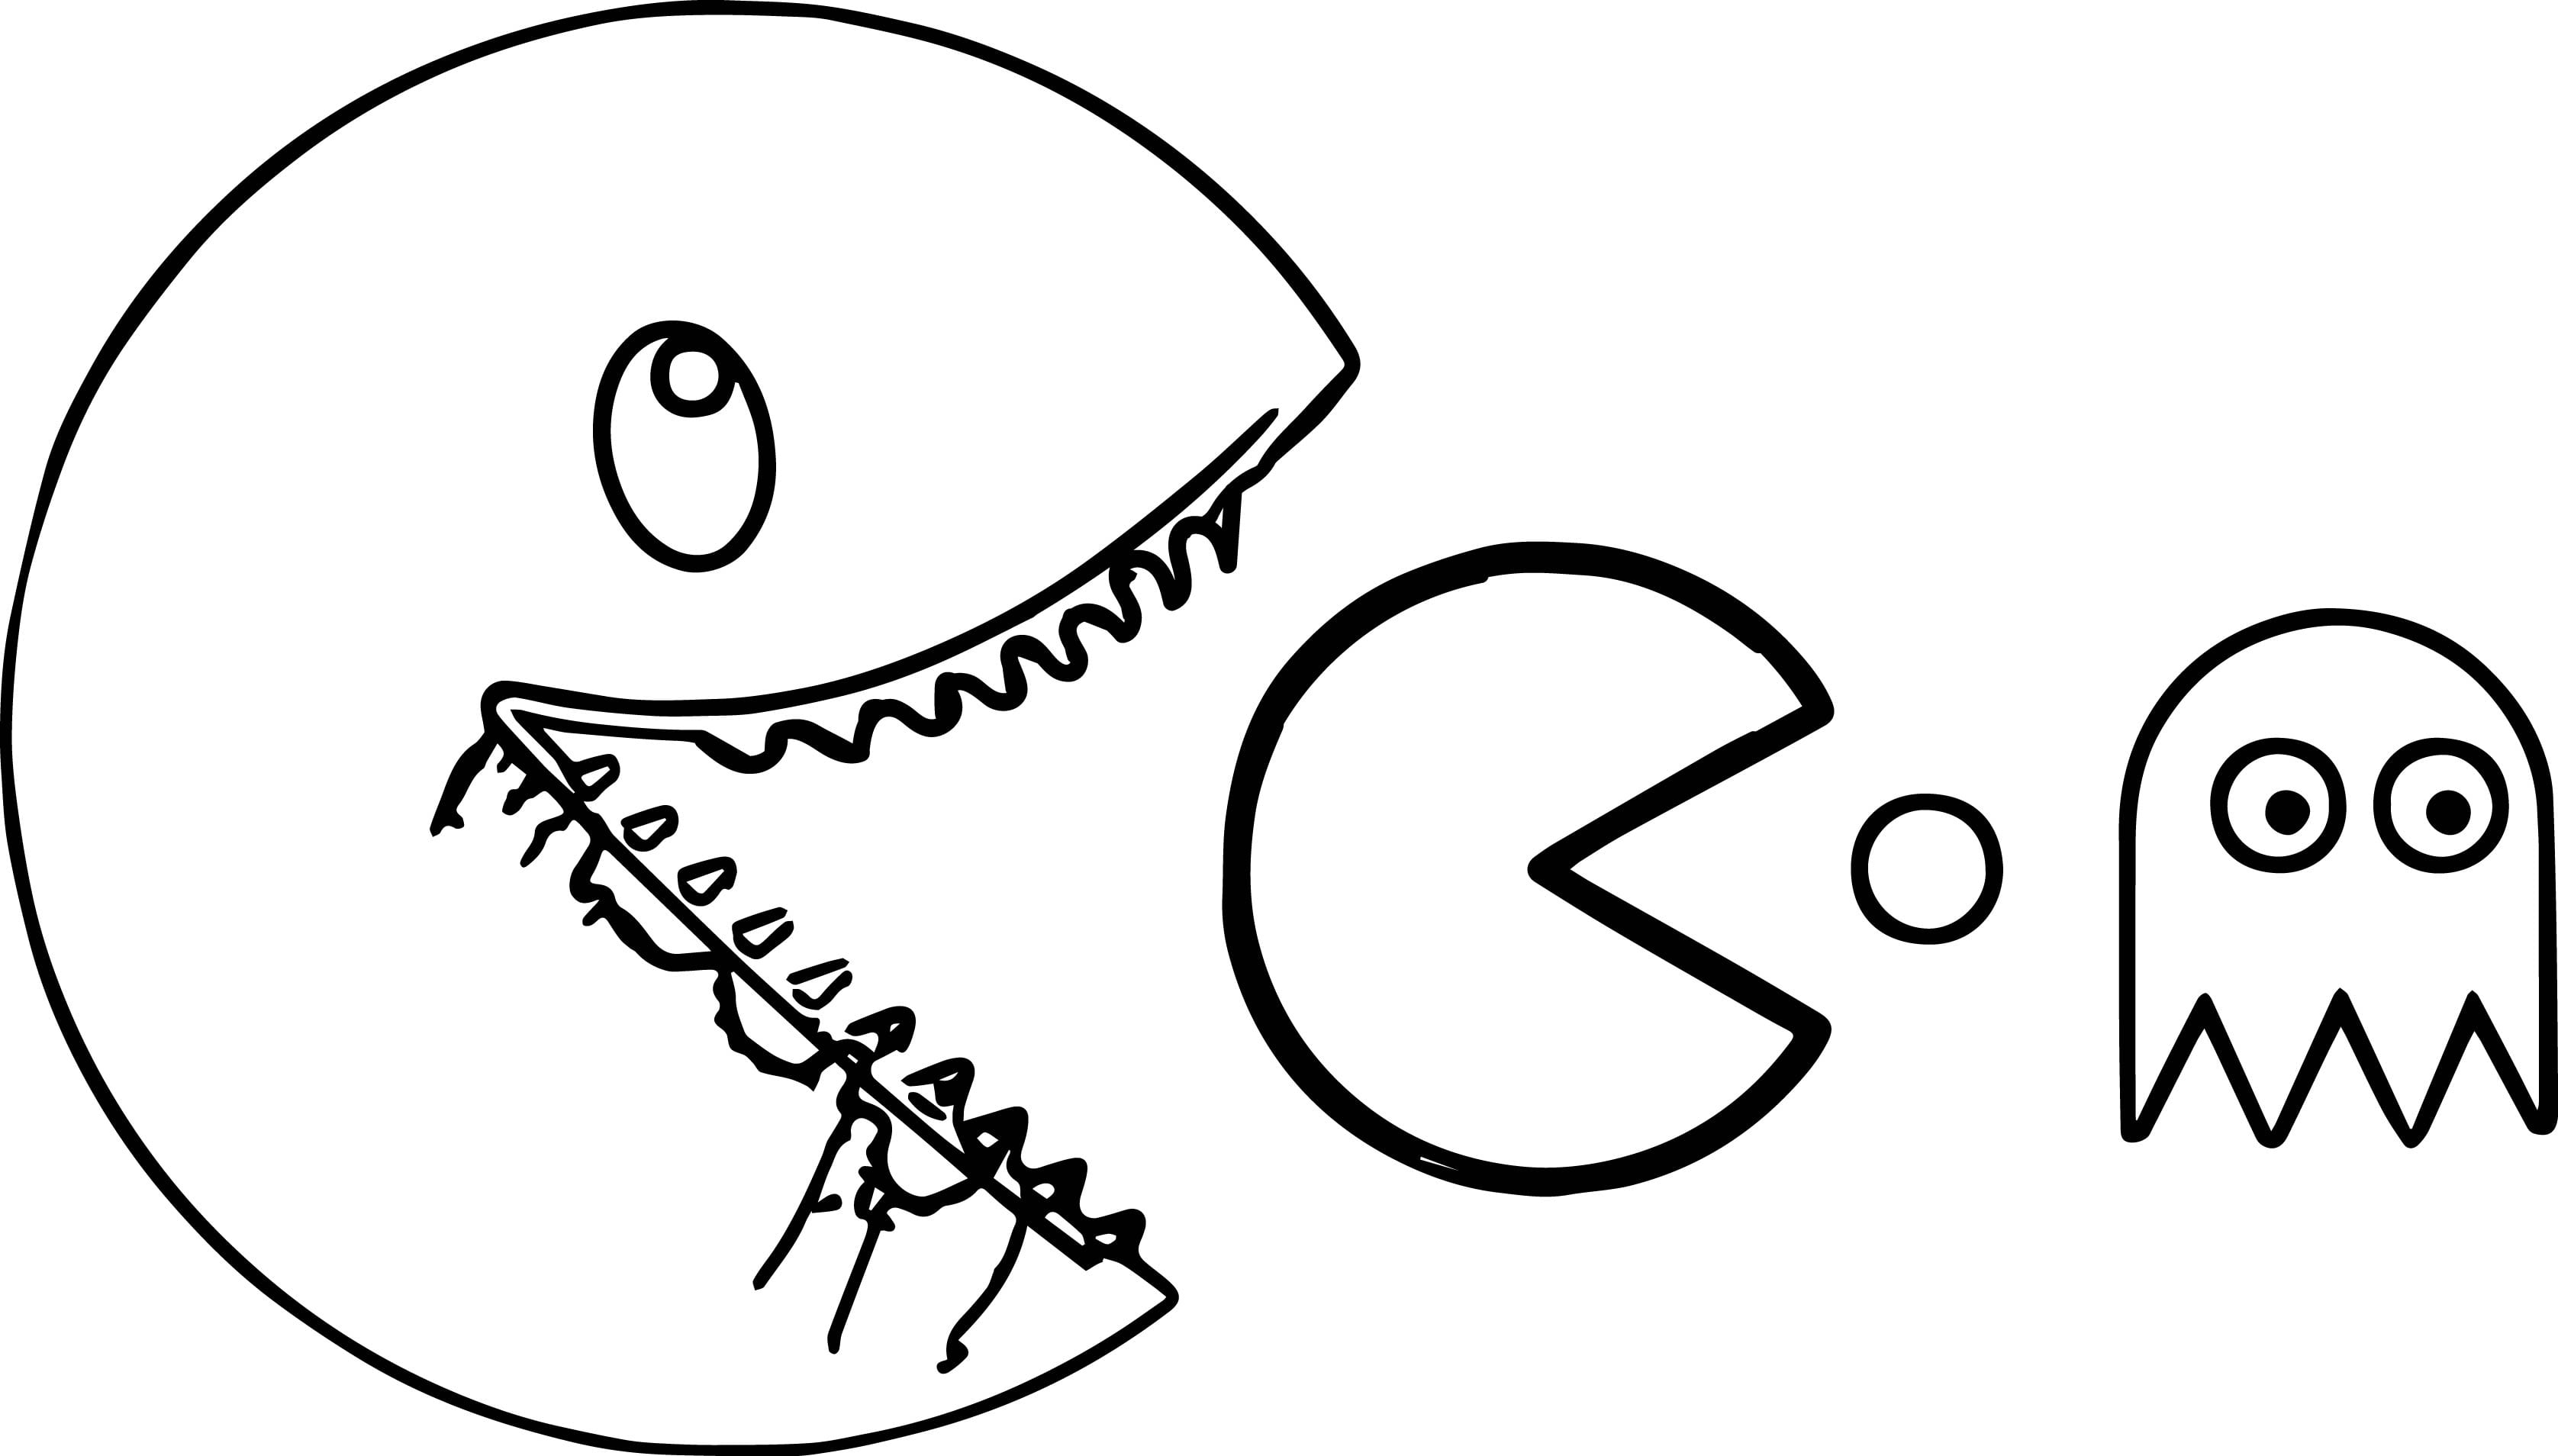 Breakthrough Pac Man Coloring Pages To Print Pacman Printable